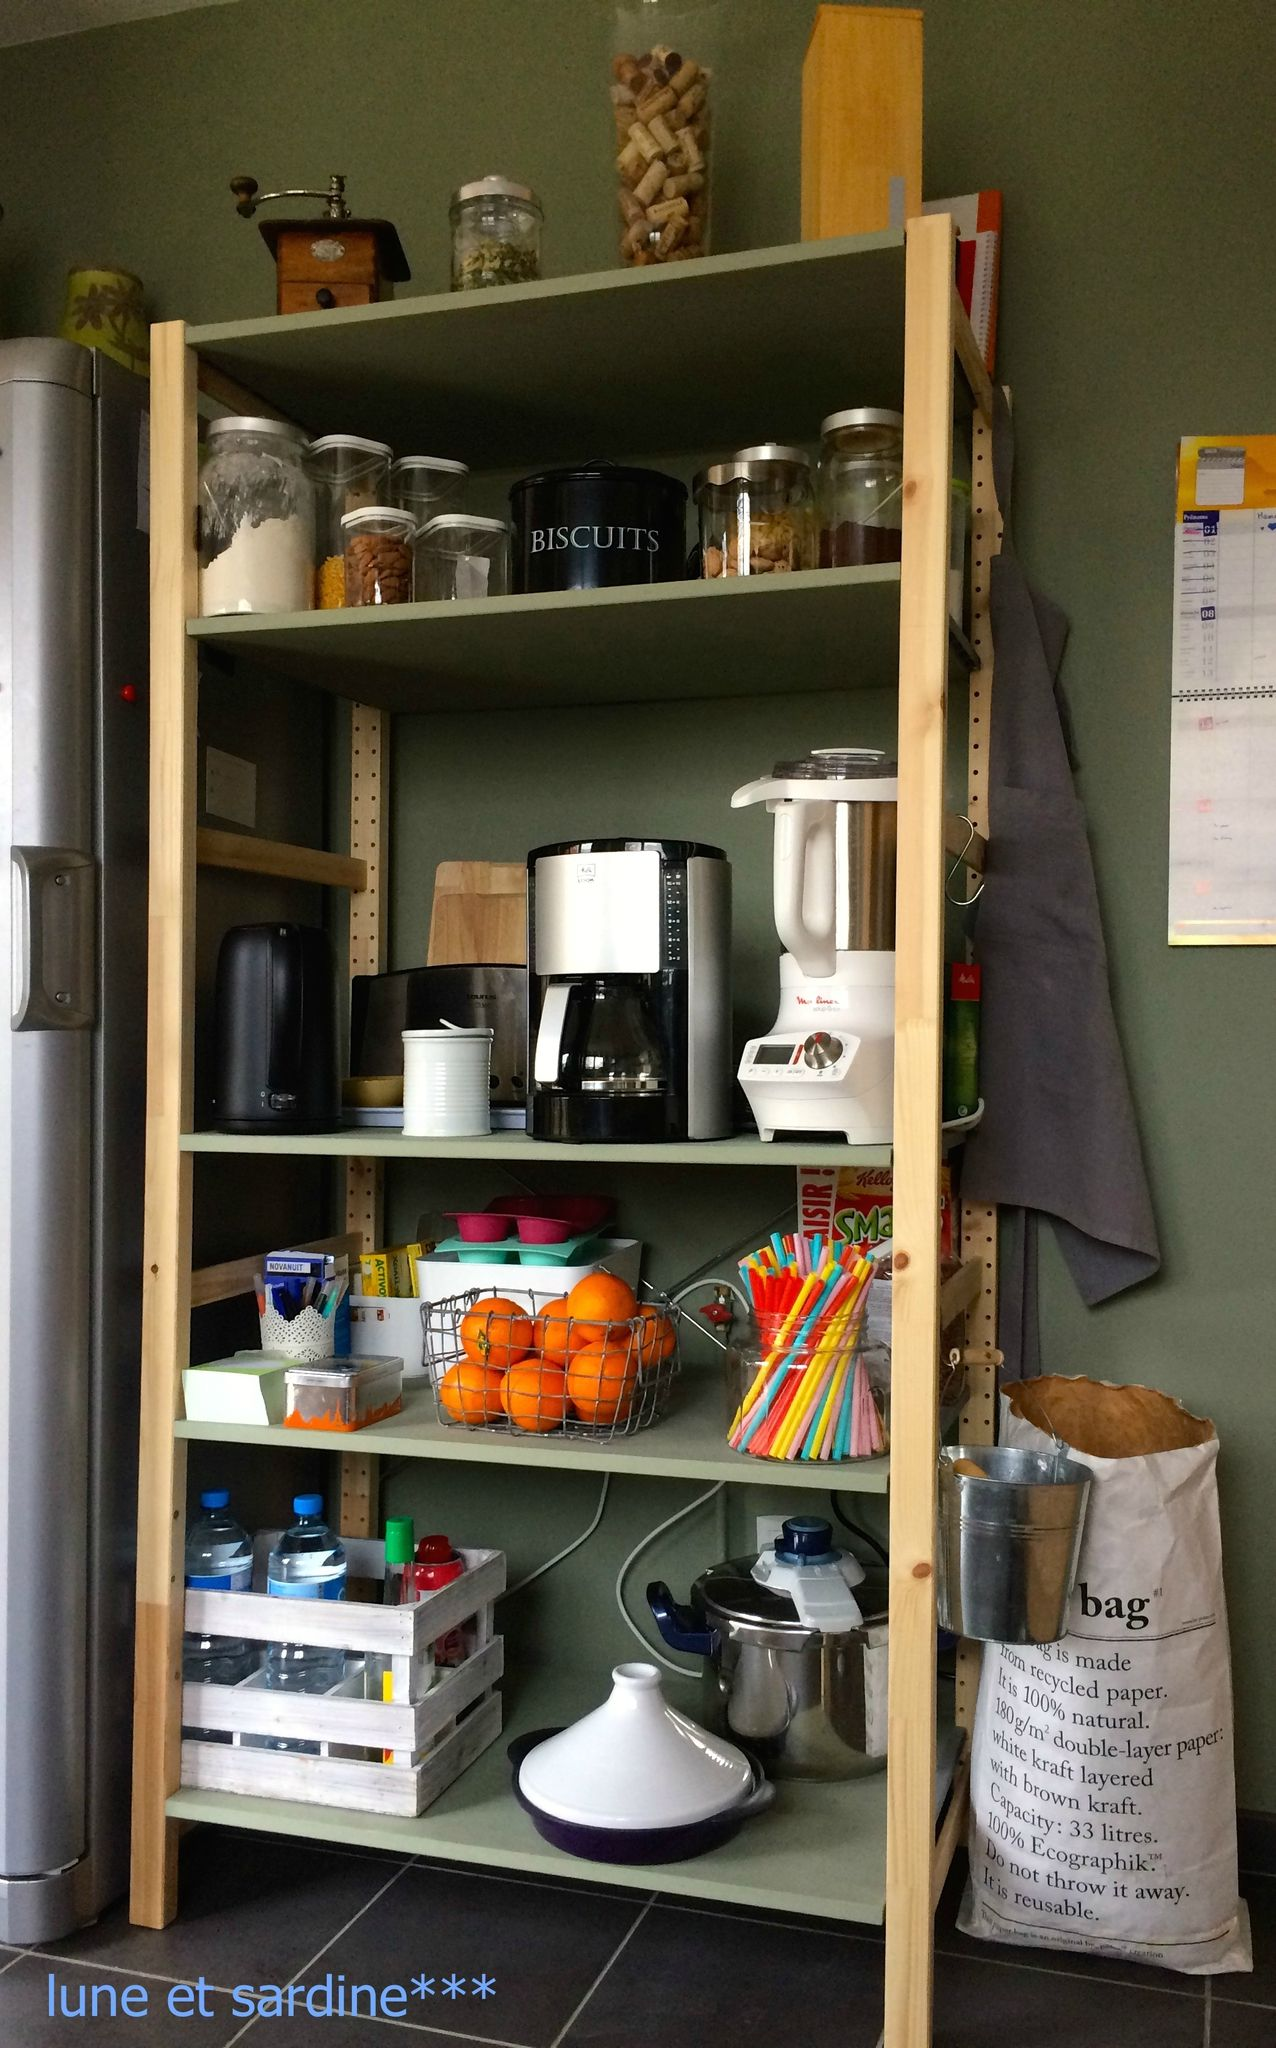 tag re cuisine ik a ivar pantry kitchen inspiration